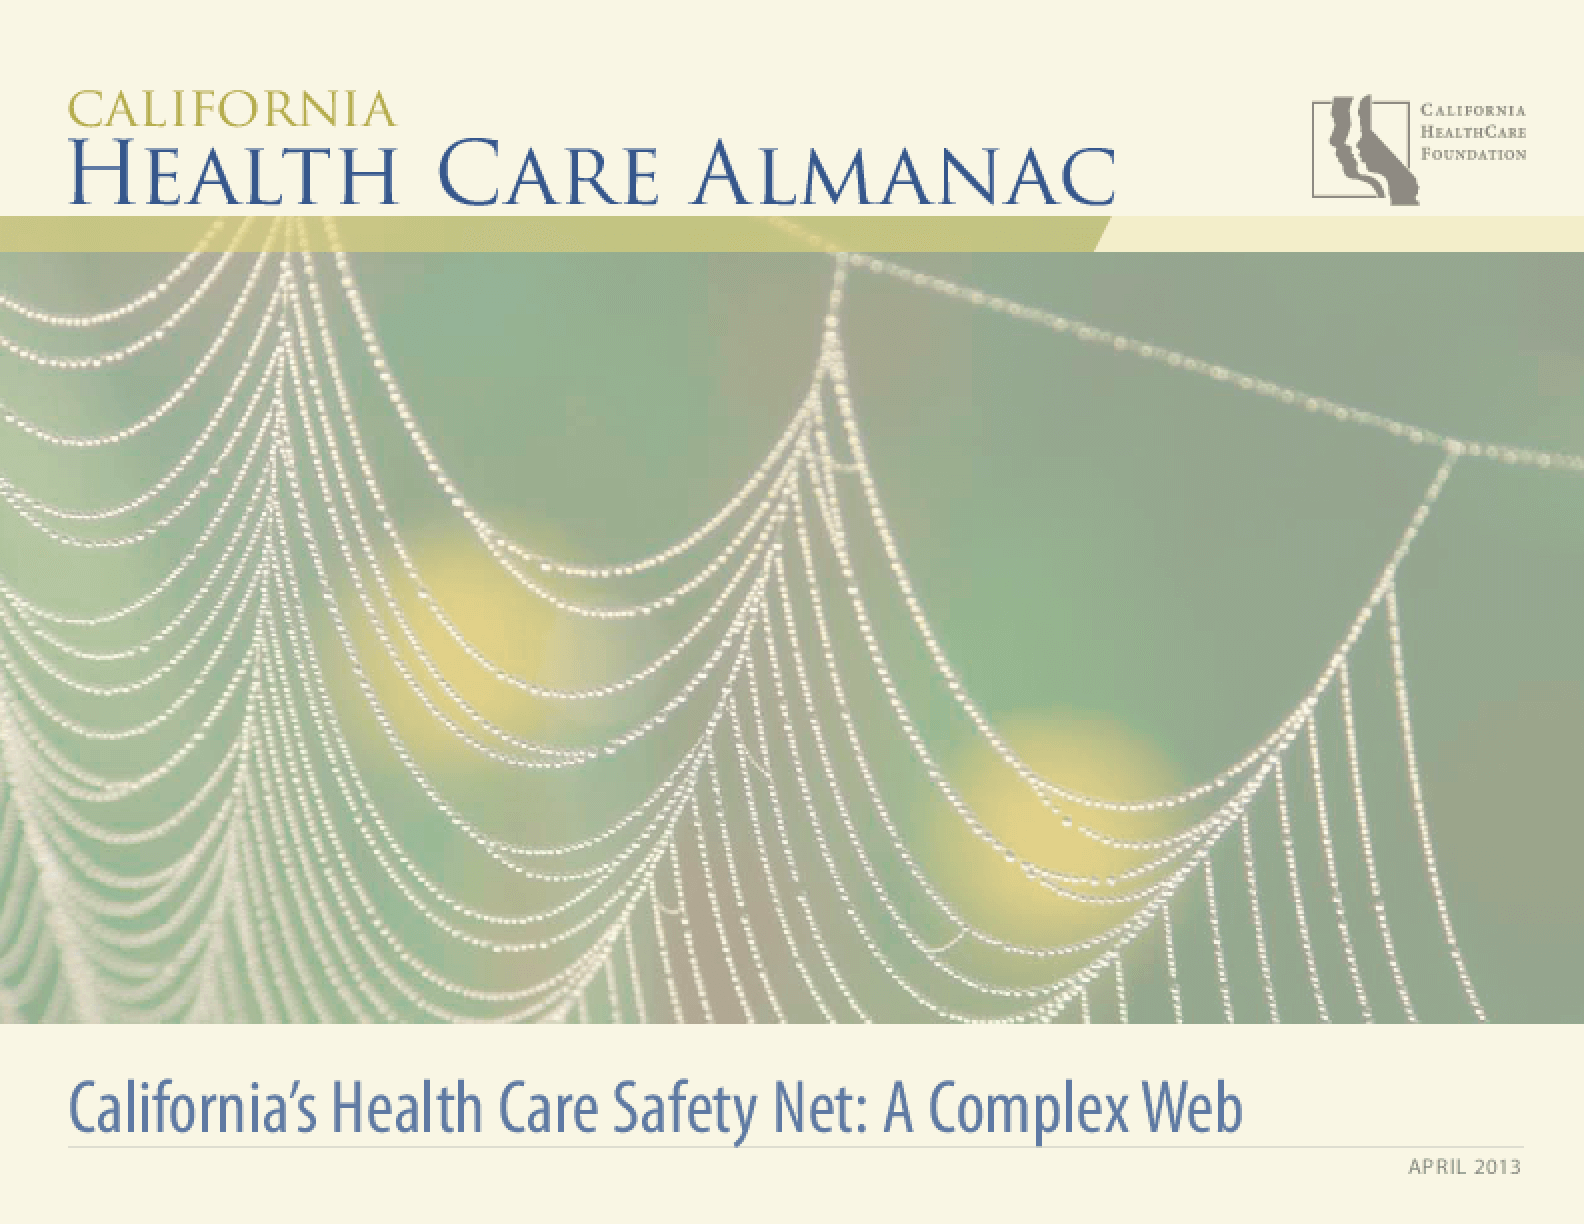 California's Health Care Safety Net: A Complex Web